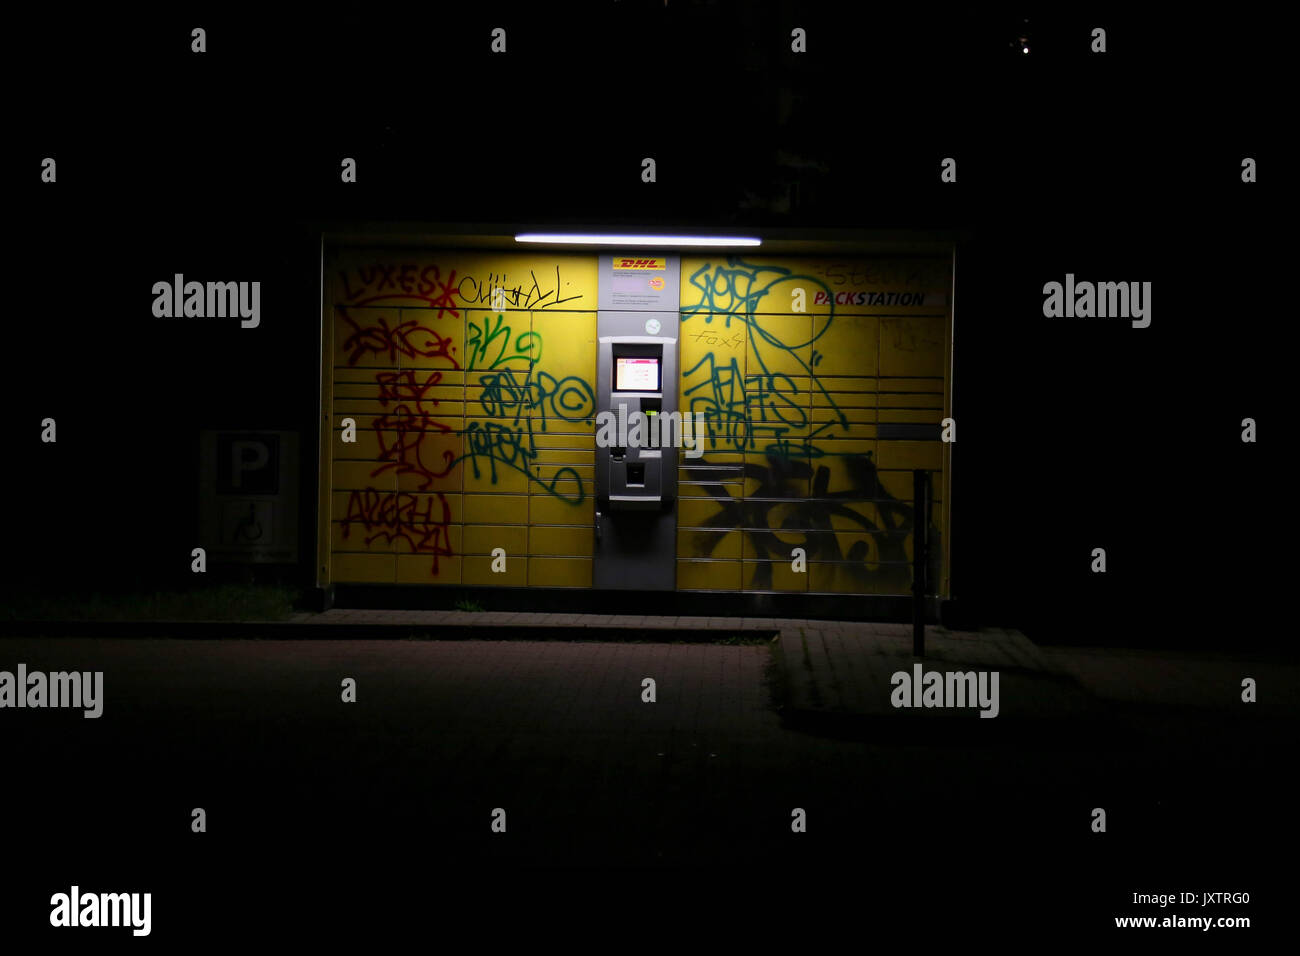 Cash Pool Automaten Geldautomat Stock Photos And Geldautomat Stock Images Alamy